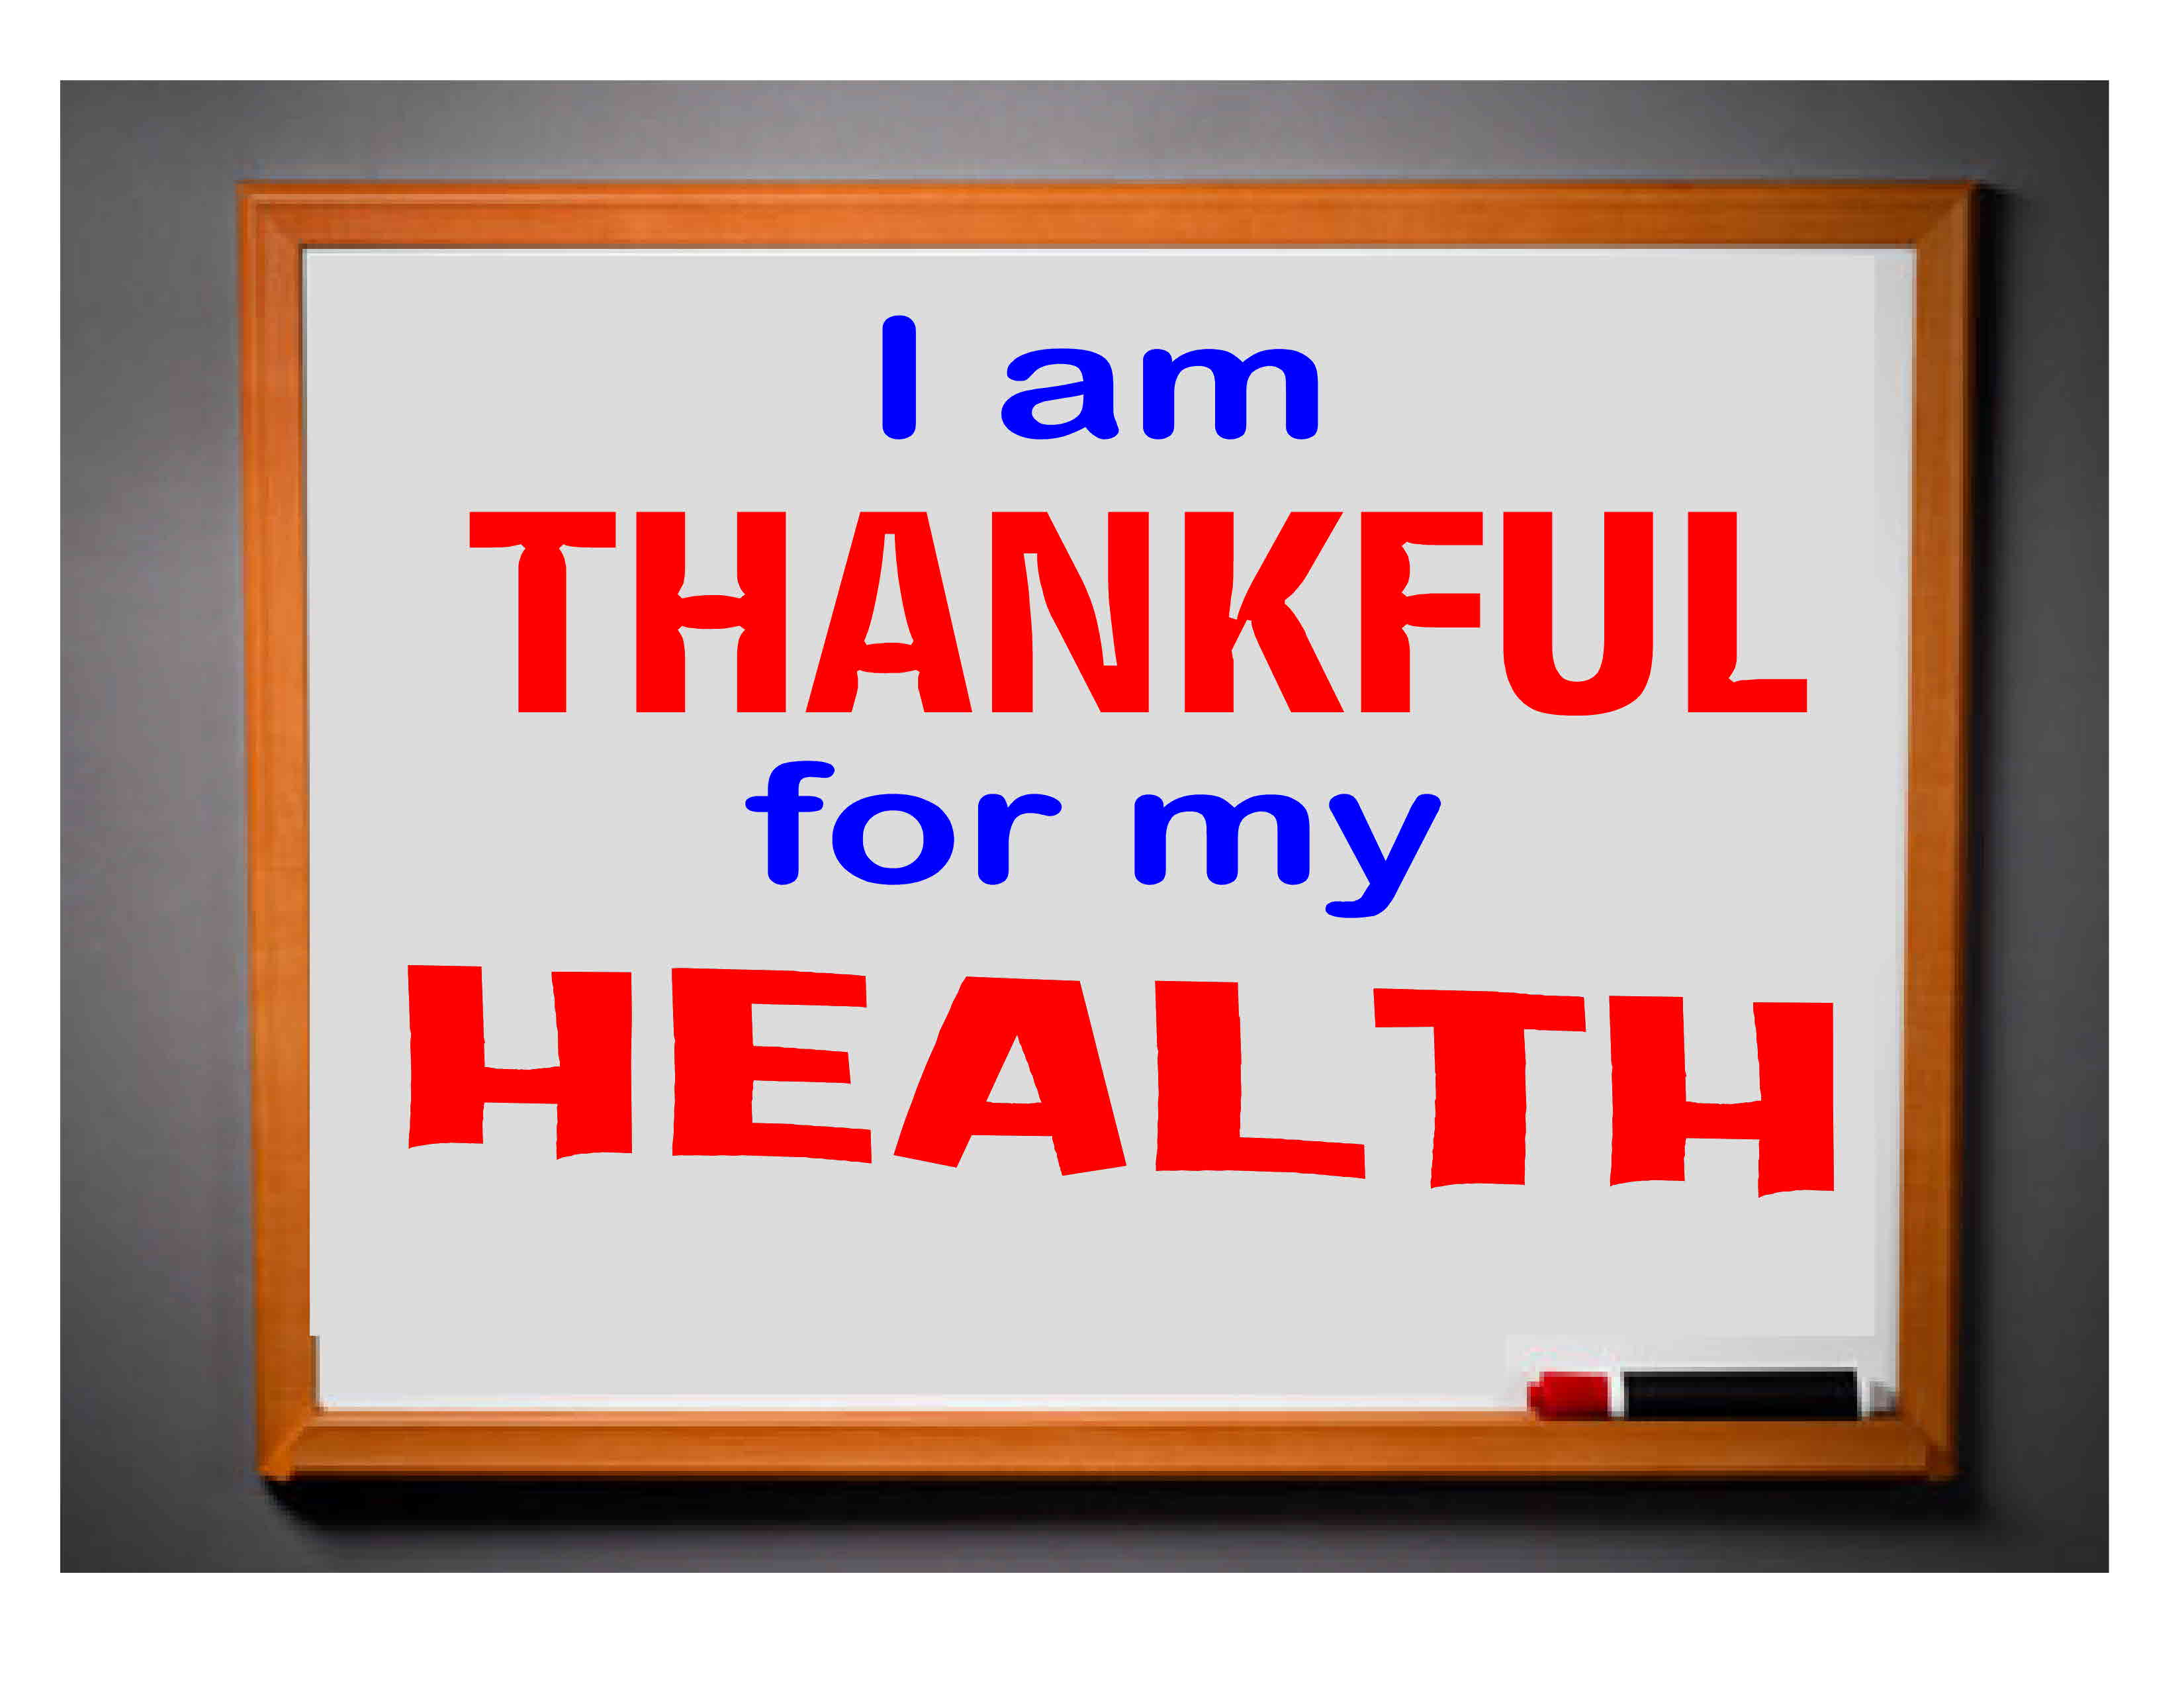 Today I am Thankful for my Health